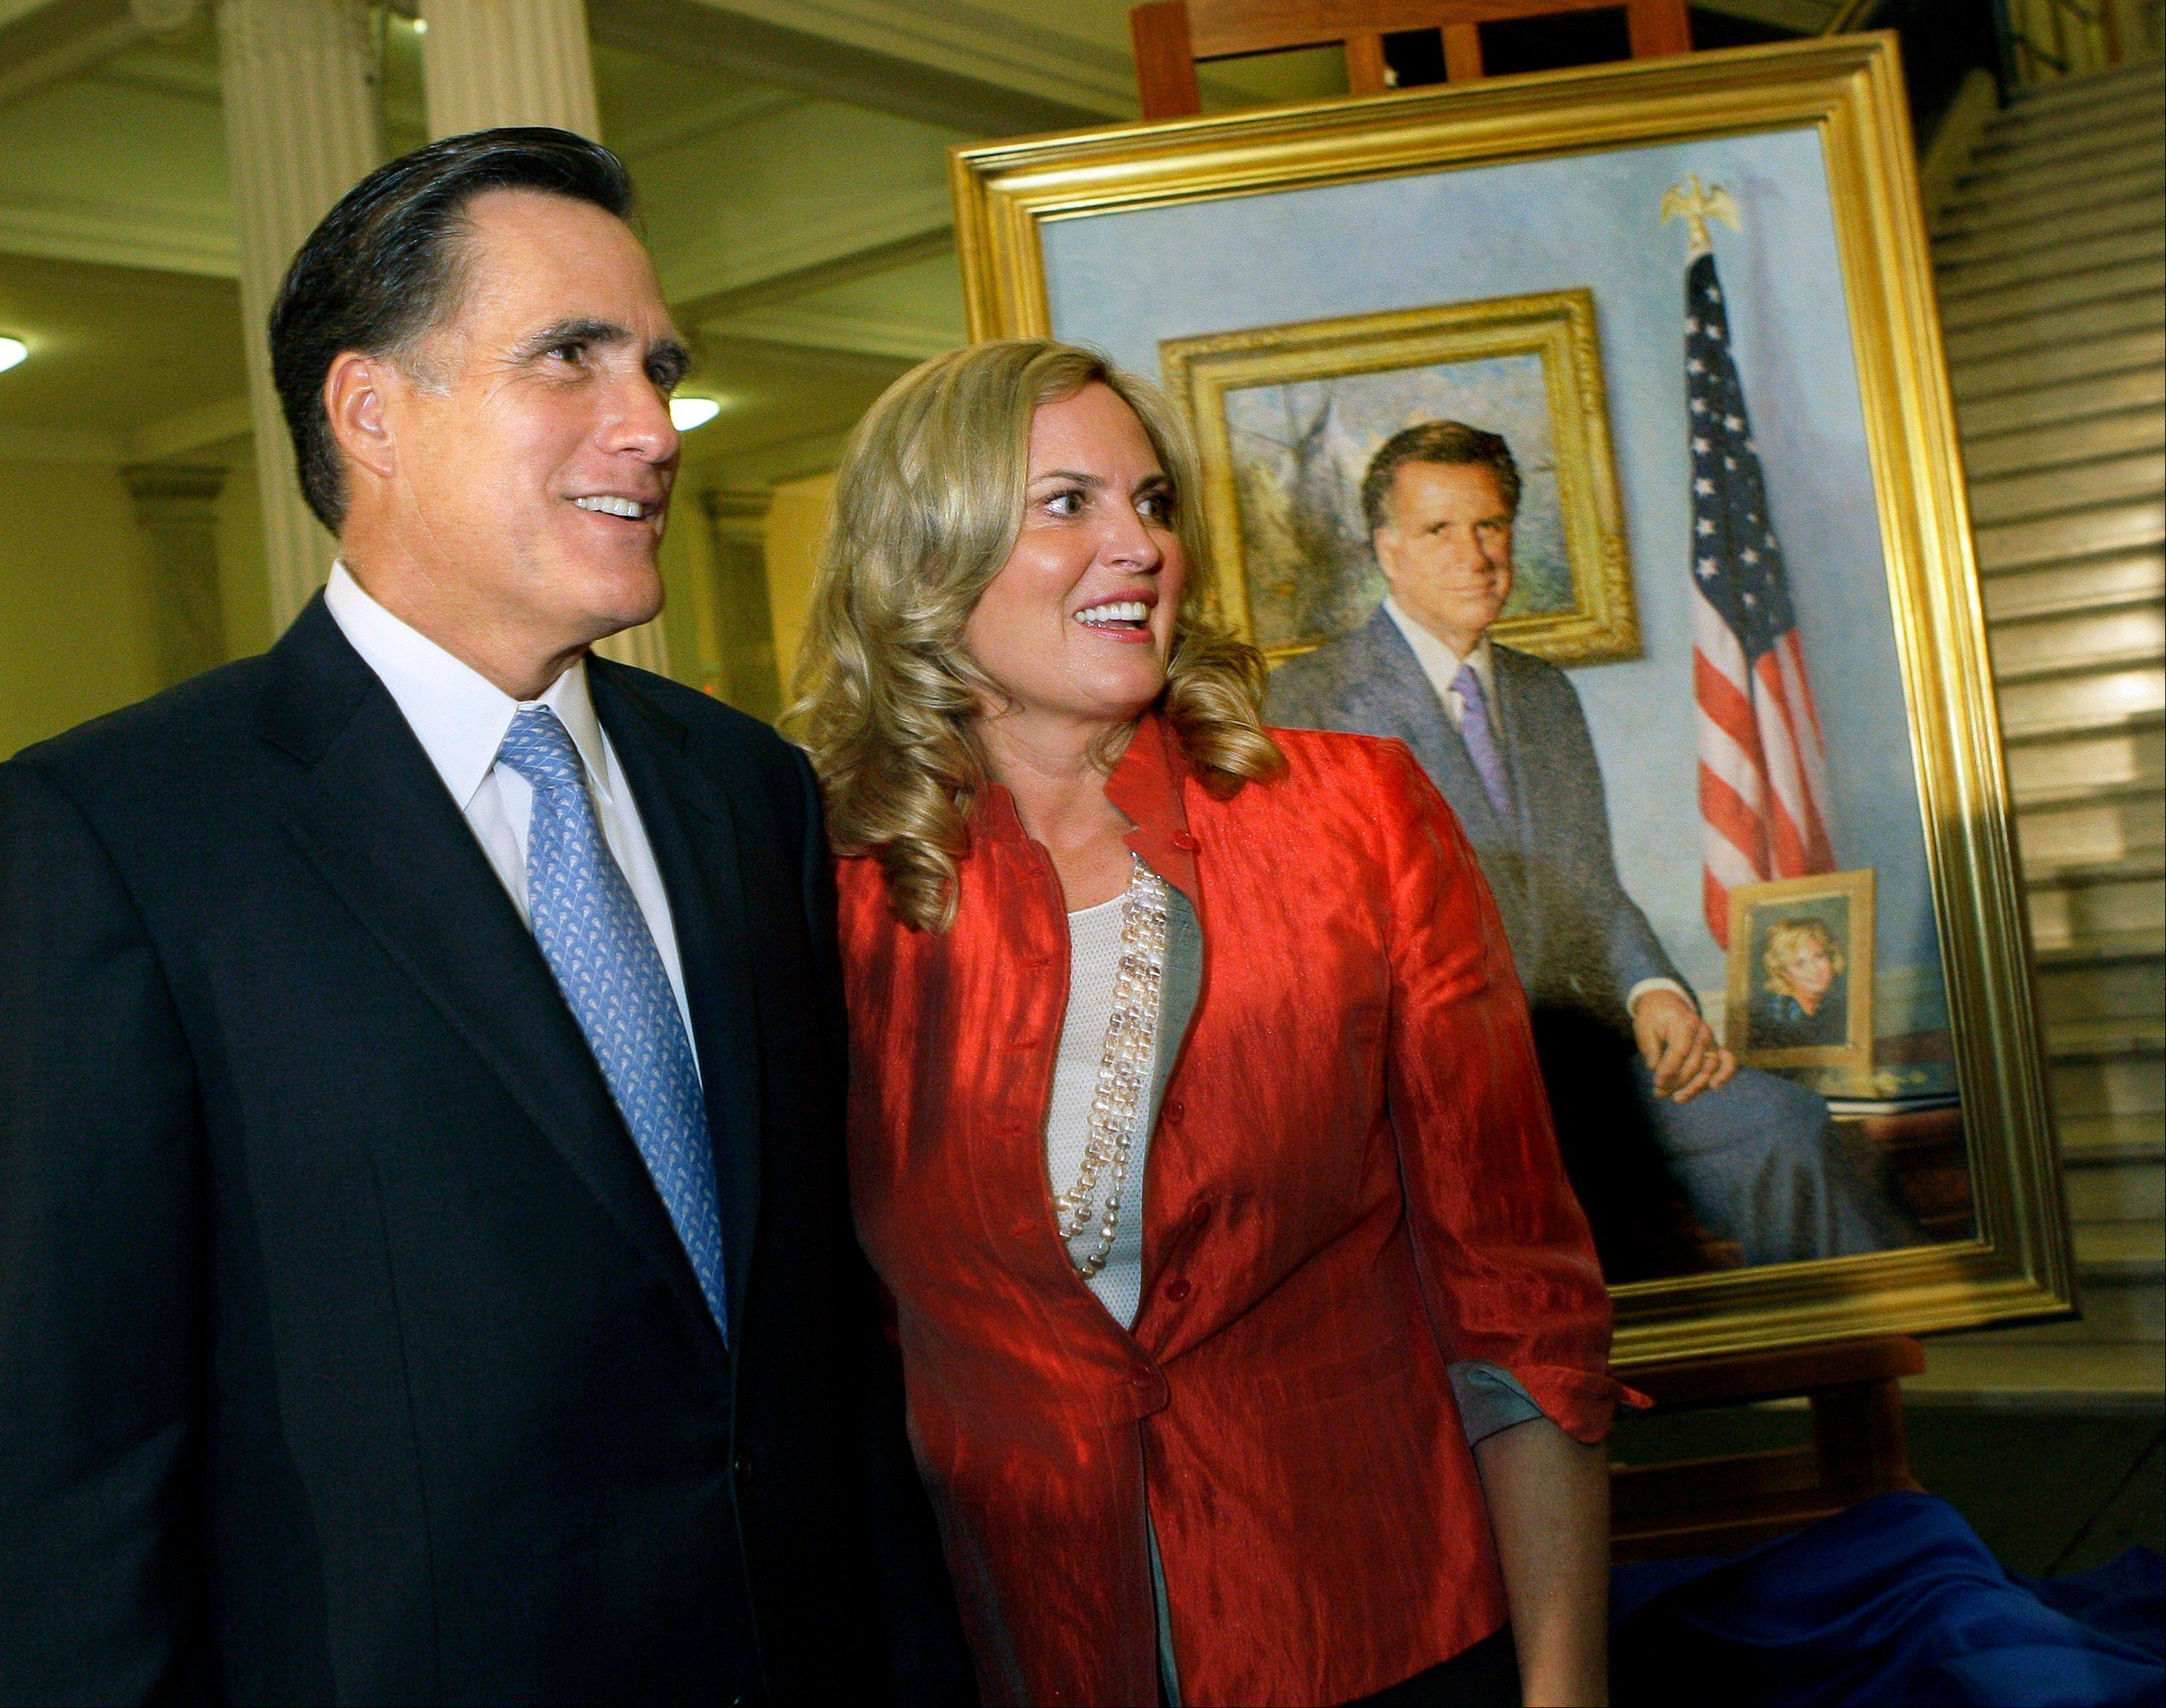 Former Massachusetts Gov. Mitt Romney and his wife, Ann, greet guests after his official portrait is unveiled during a ceremony on the Grand Staircase at the Statehouse in Boston.